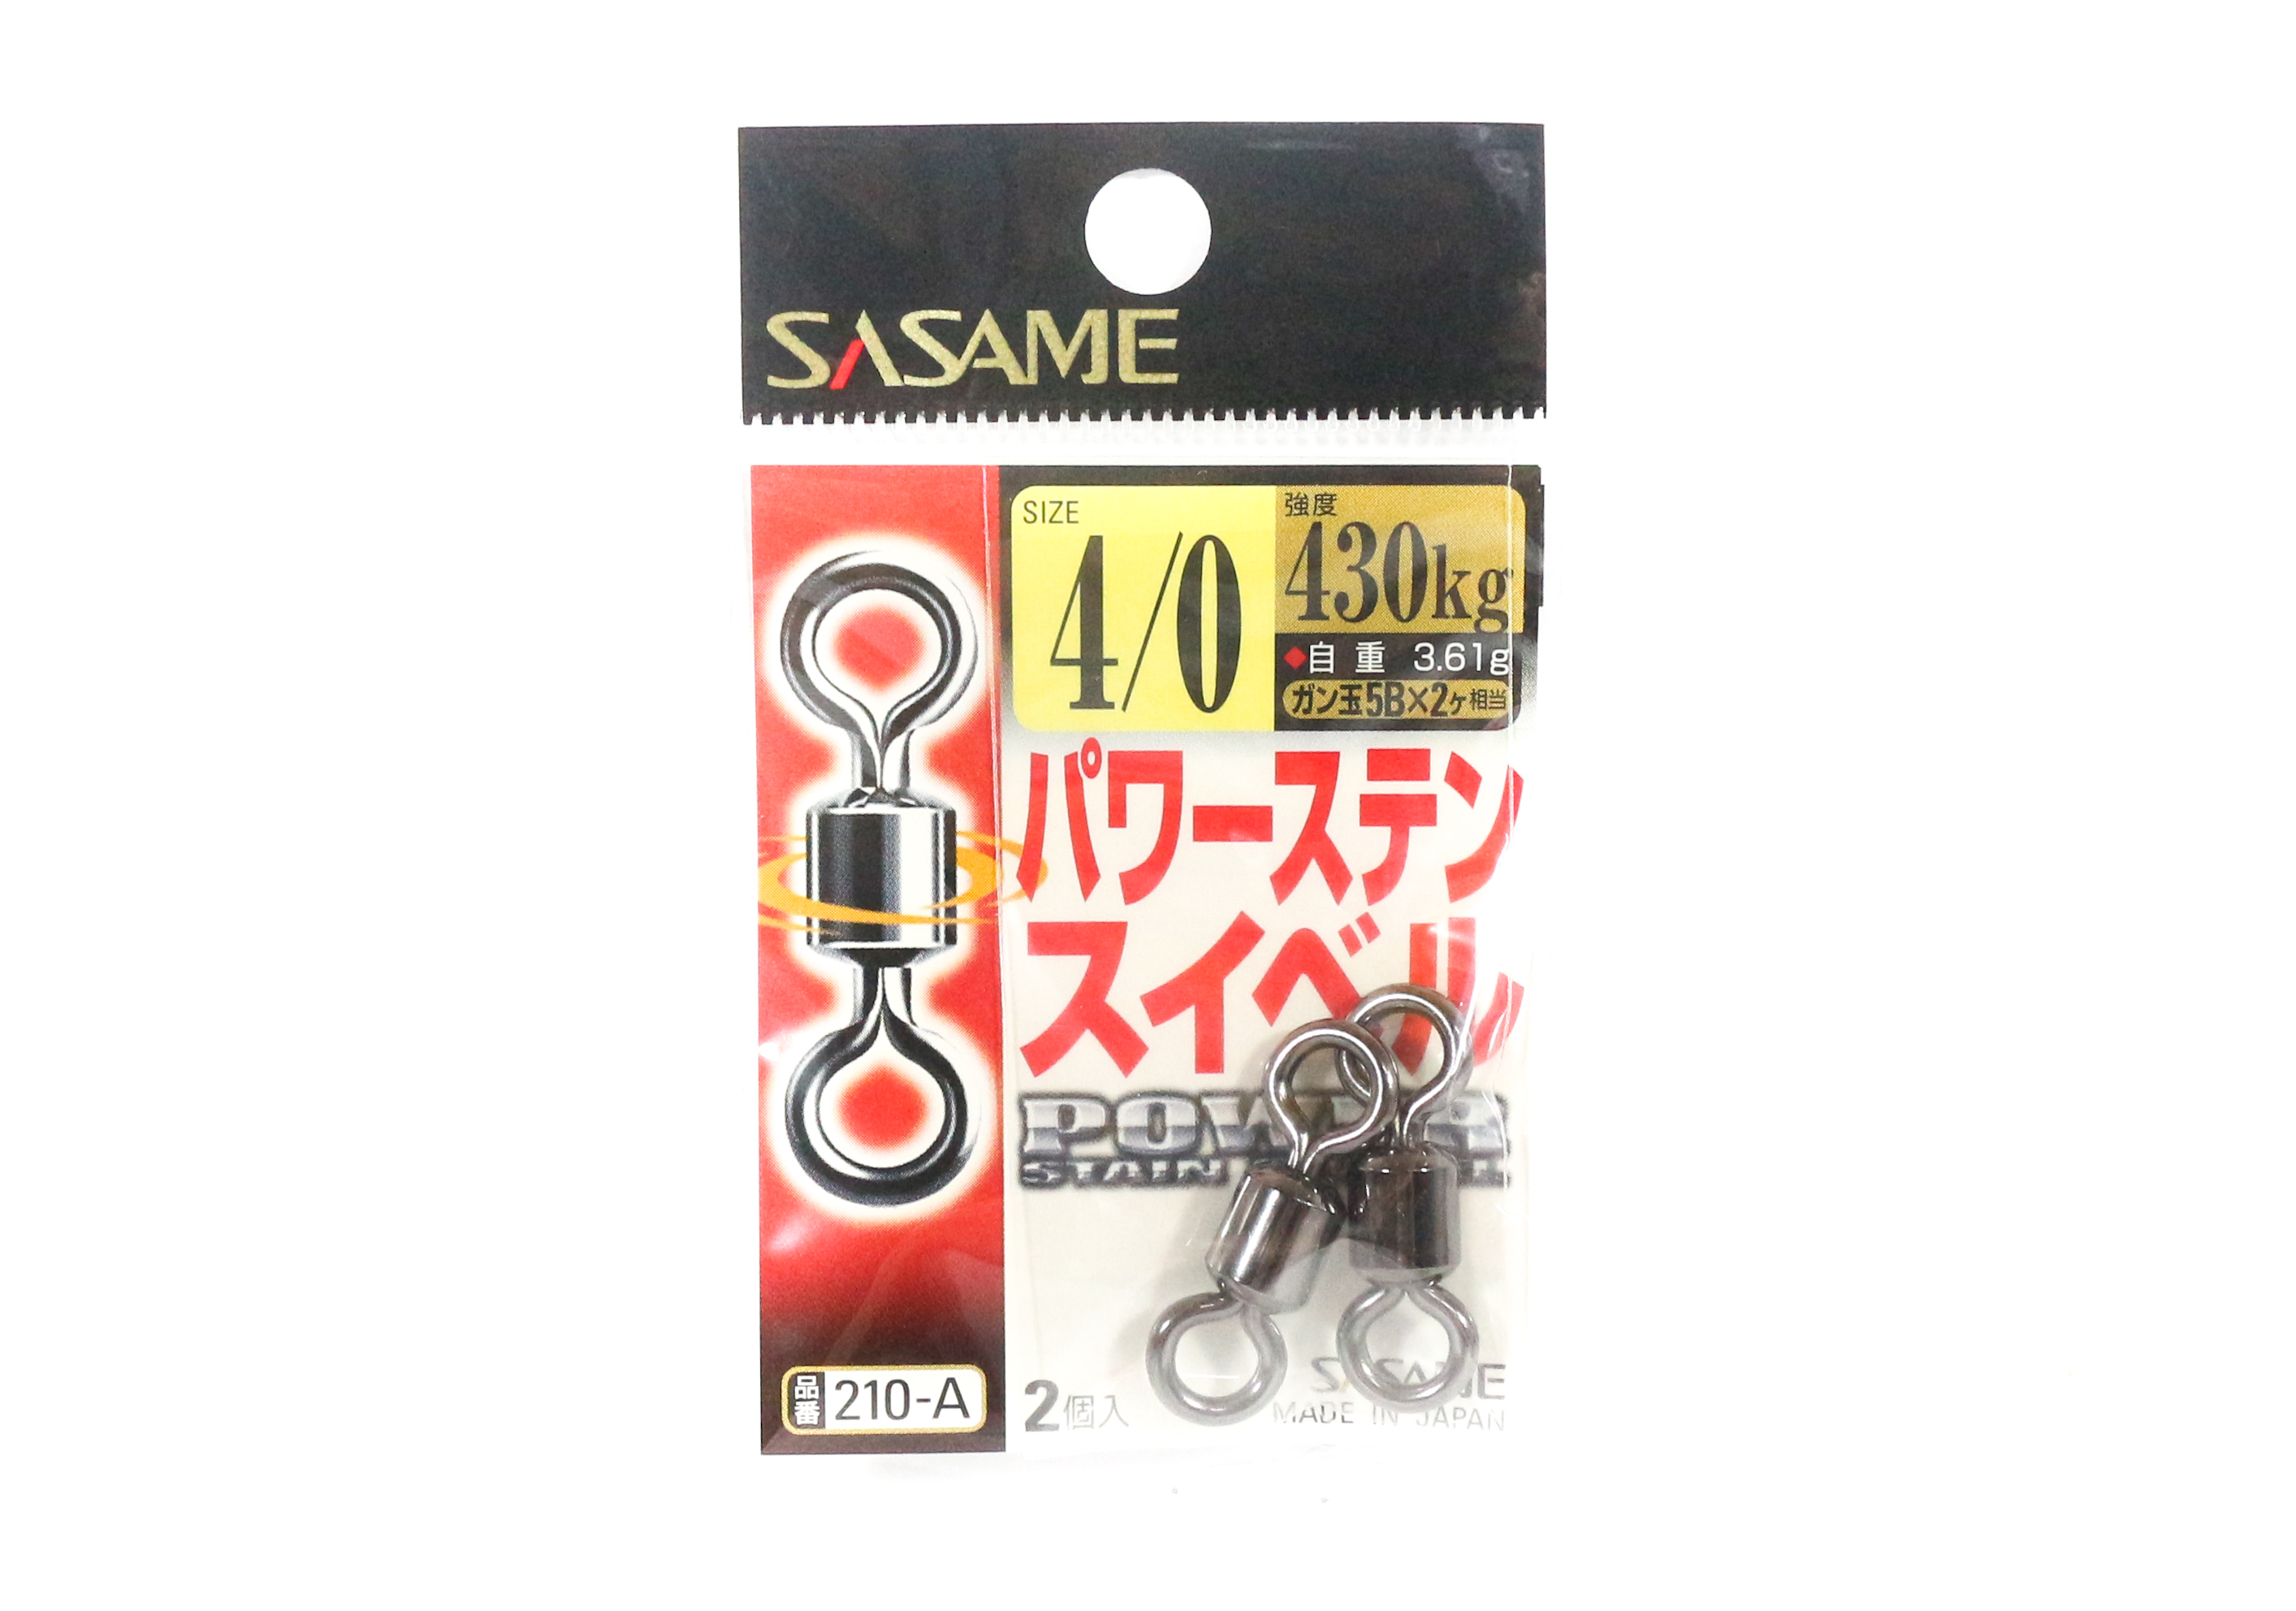 Sasame 210-A Power Stain Swivel Smooth Spin Black Size 4/0 (0938)